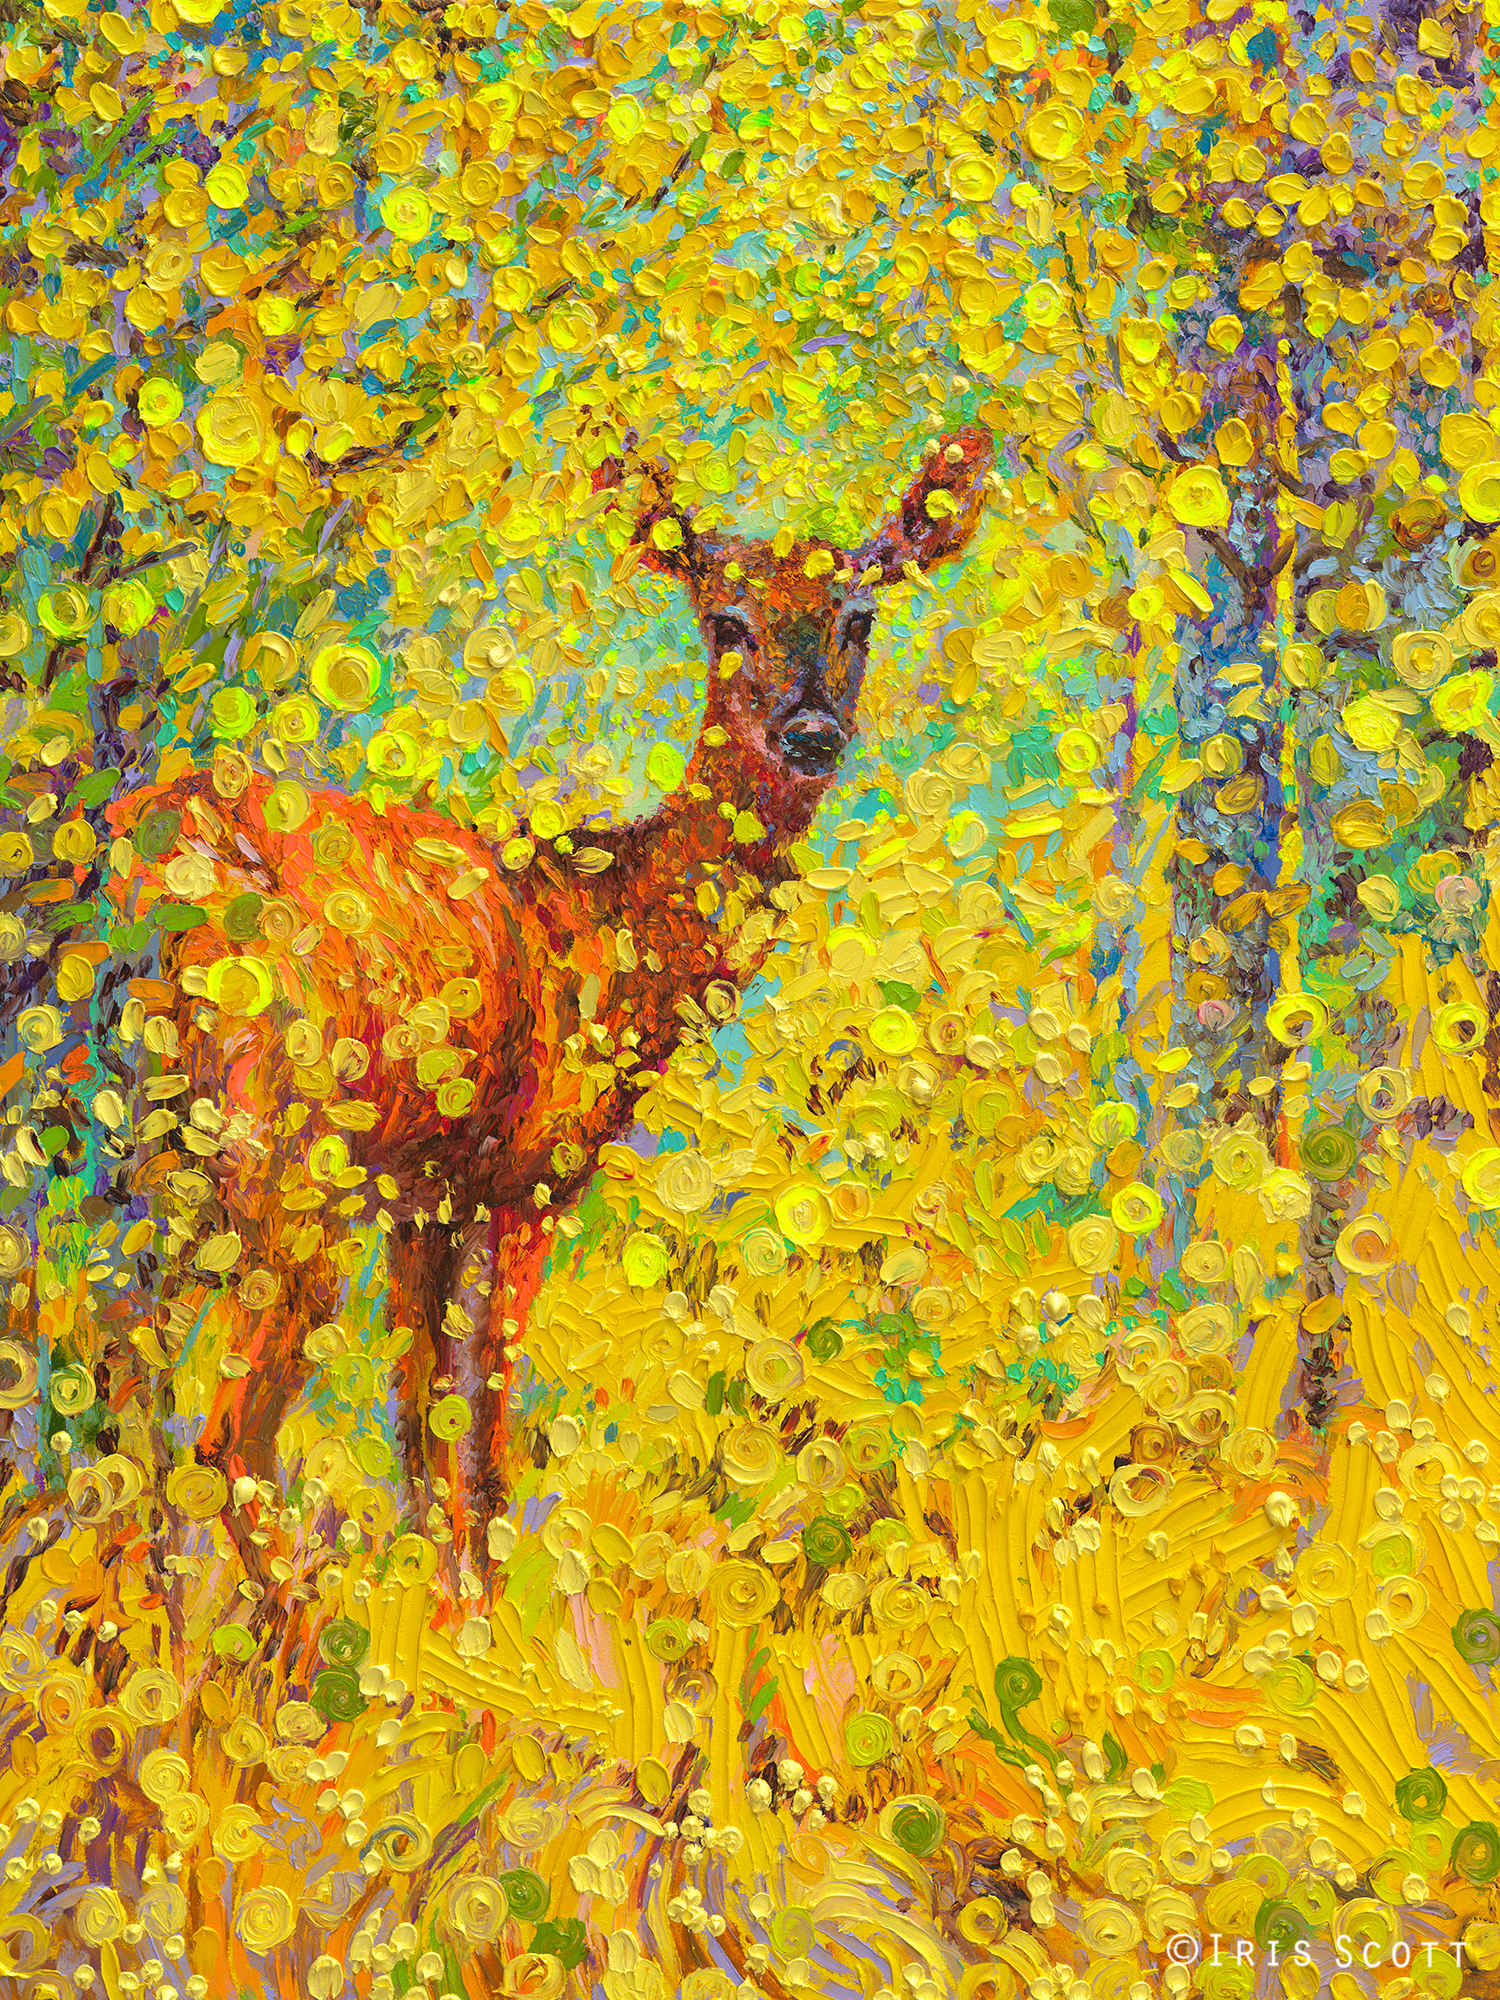 Whitetail Deer – Iris Scott